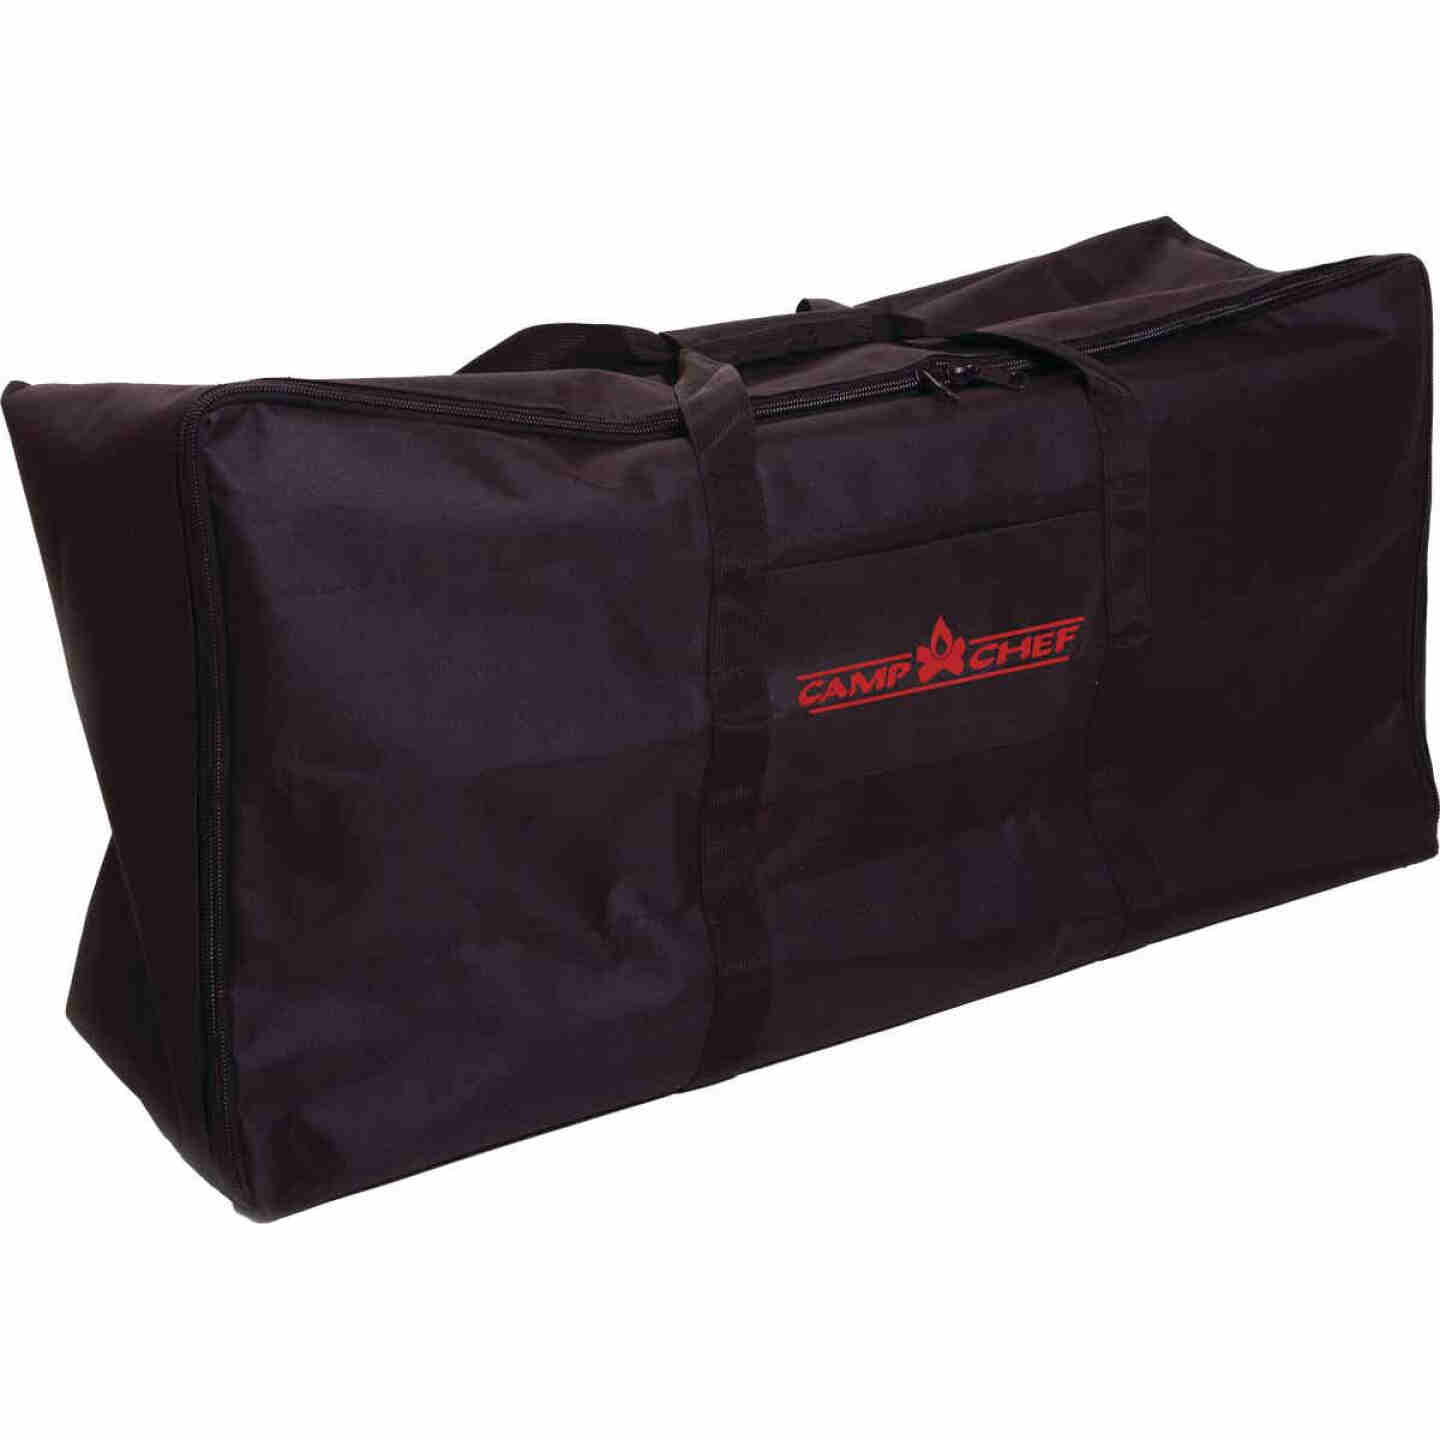 Camp Chef 9 In. H. x 34.5 In. L. x 16.5 In. D. Outdoor Cooking System Carry Bag Image 1